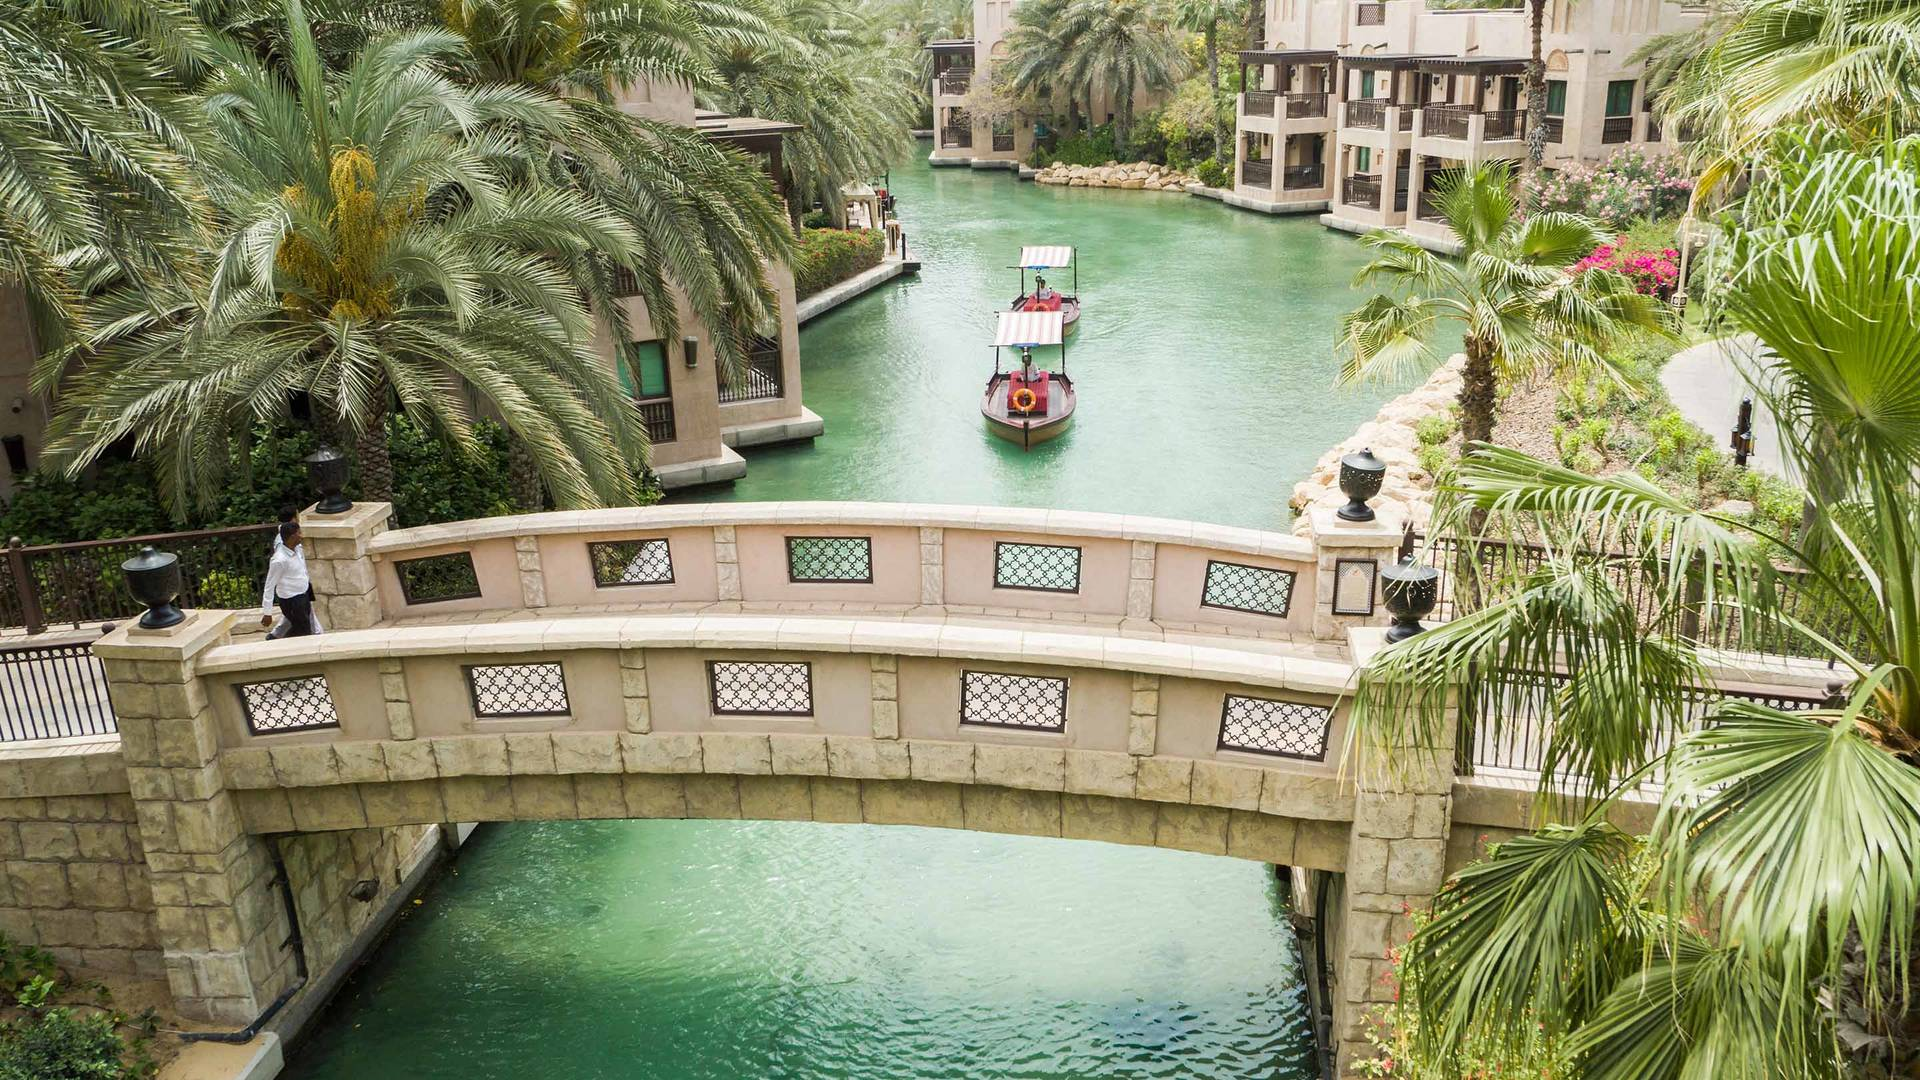 Jumeirah Dar Al Masyaf Suite Madinat Aerial Drone shot of bridge and boat